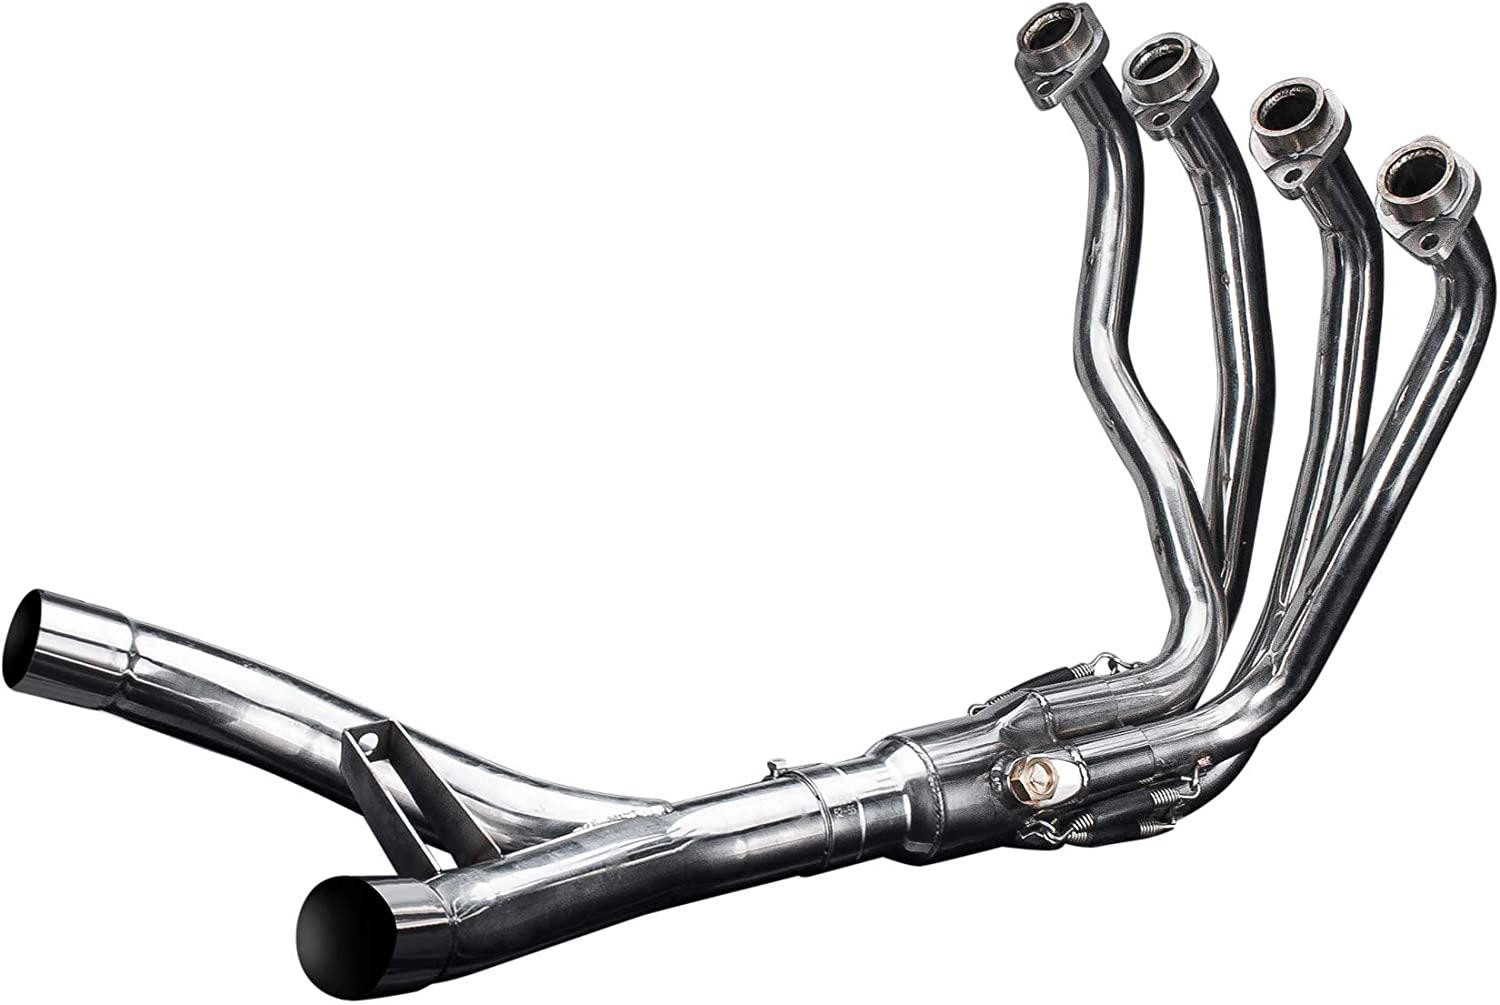 M4 Performance Exhaust dual GP Slip-Ons compatible with 2010-2019 Kawasaki Z1000 Ninja 1000 KA9022-GP